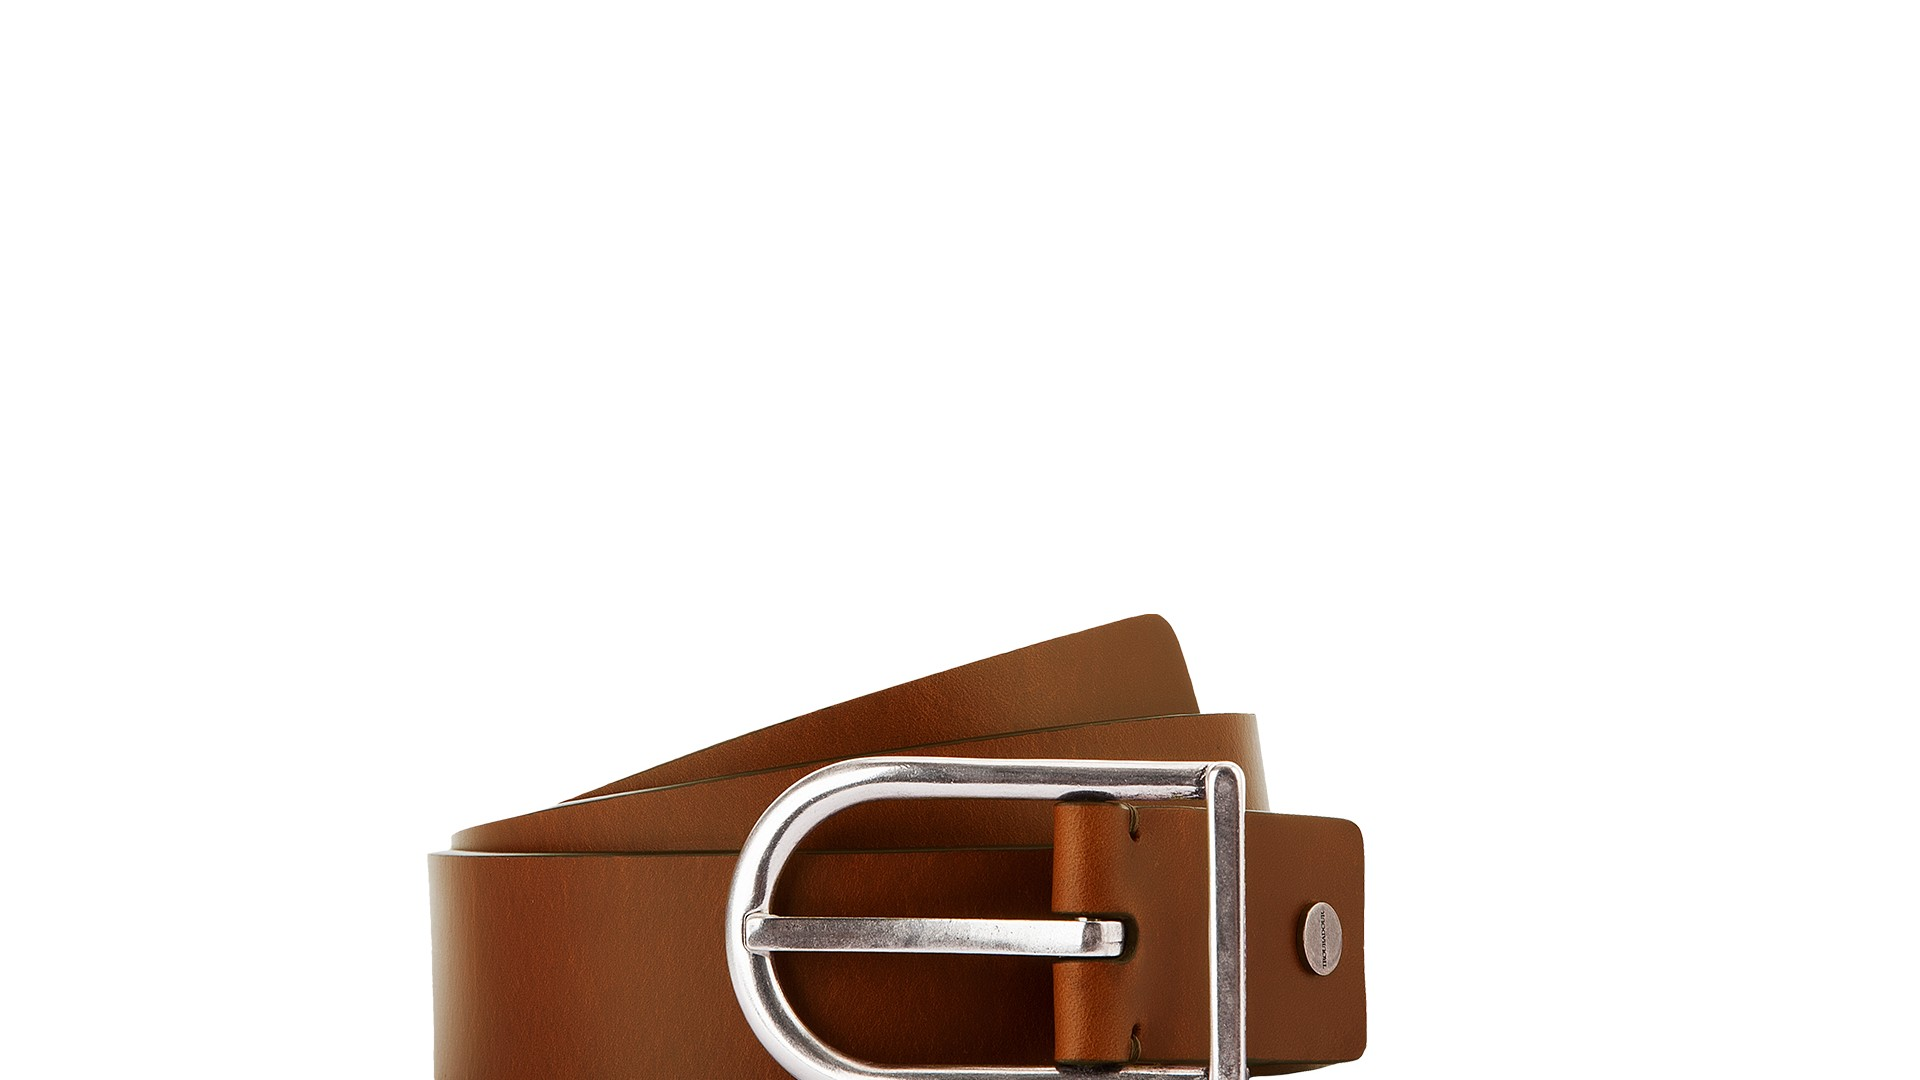 Leather belt from Troubadour